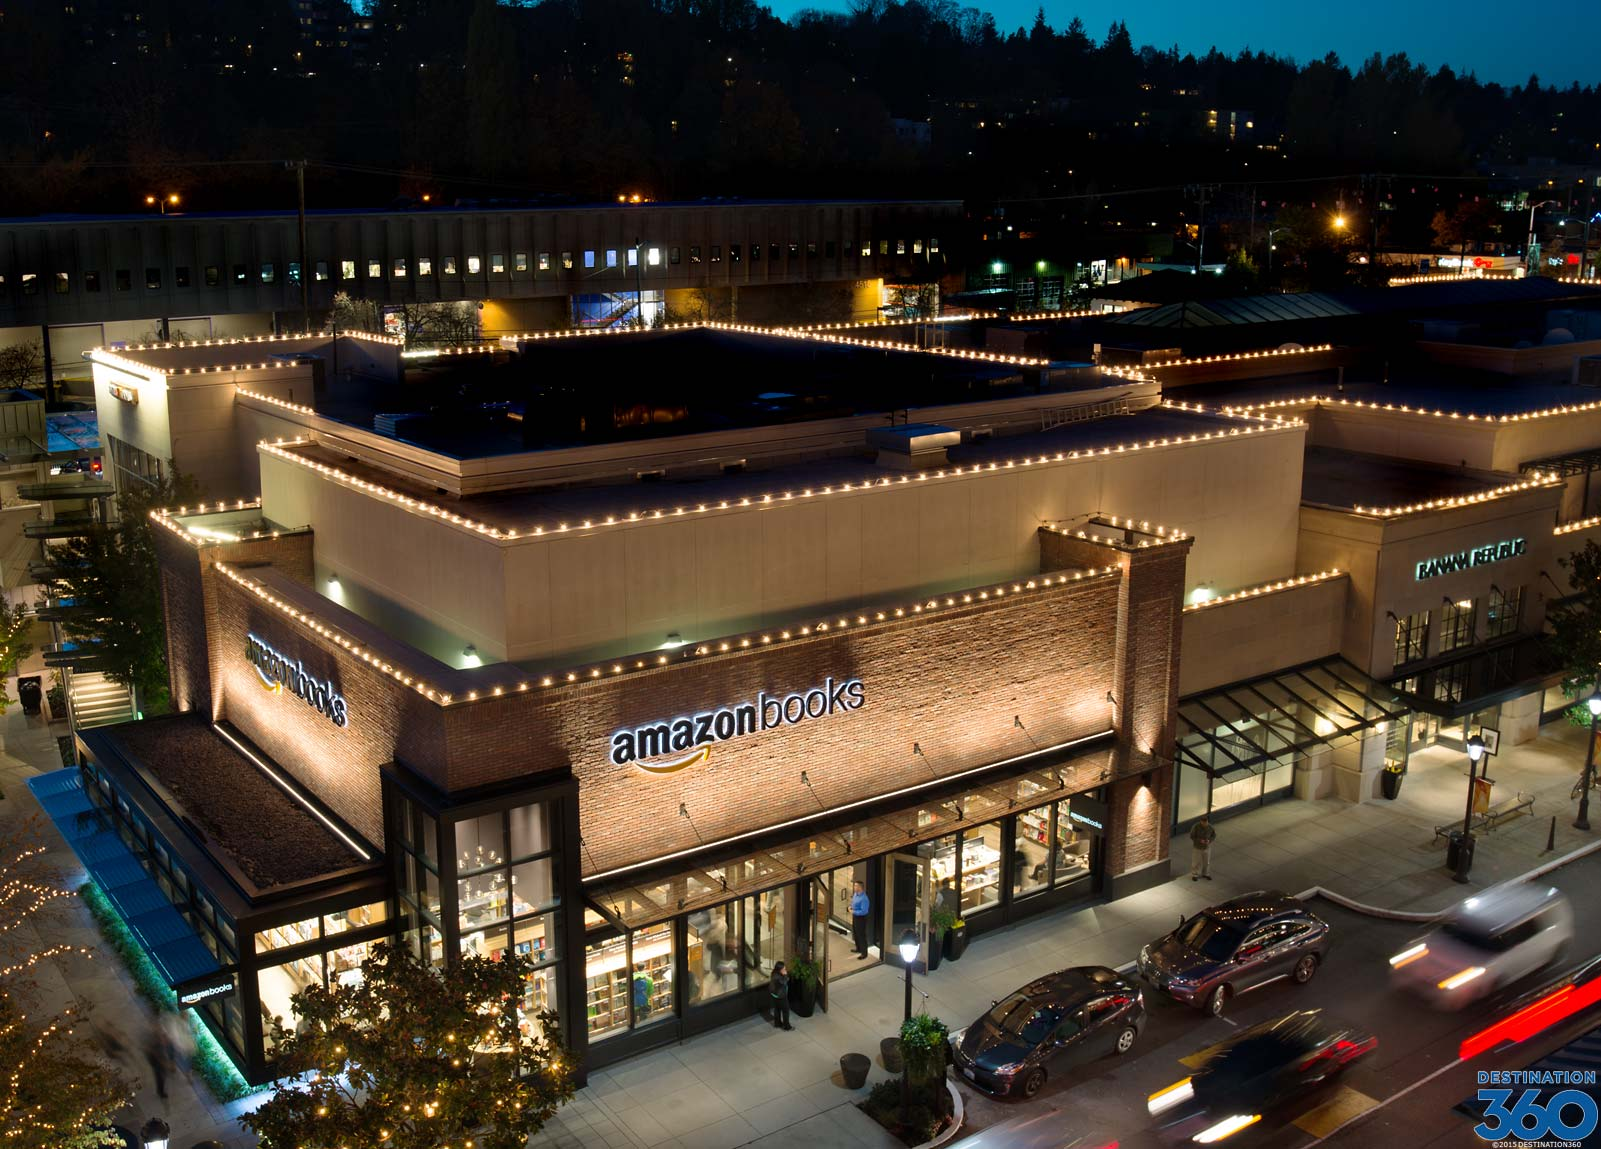 Amazon Bookstore in Seattle